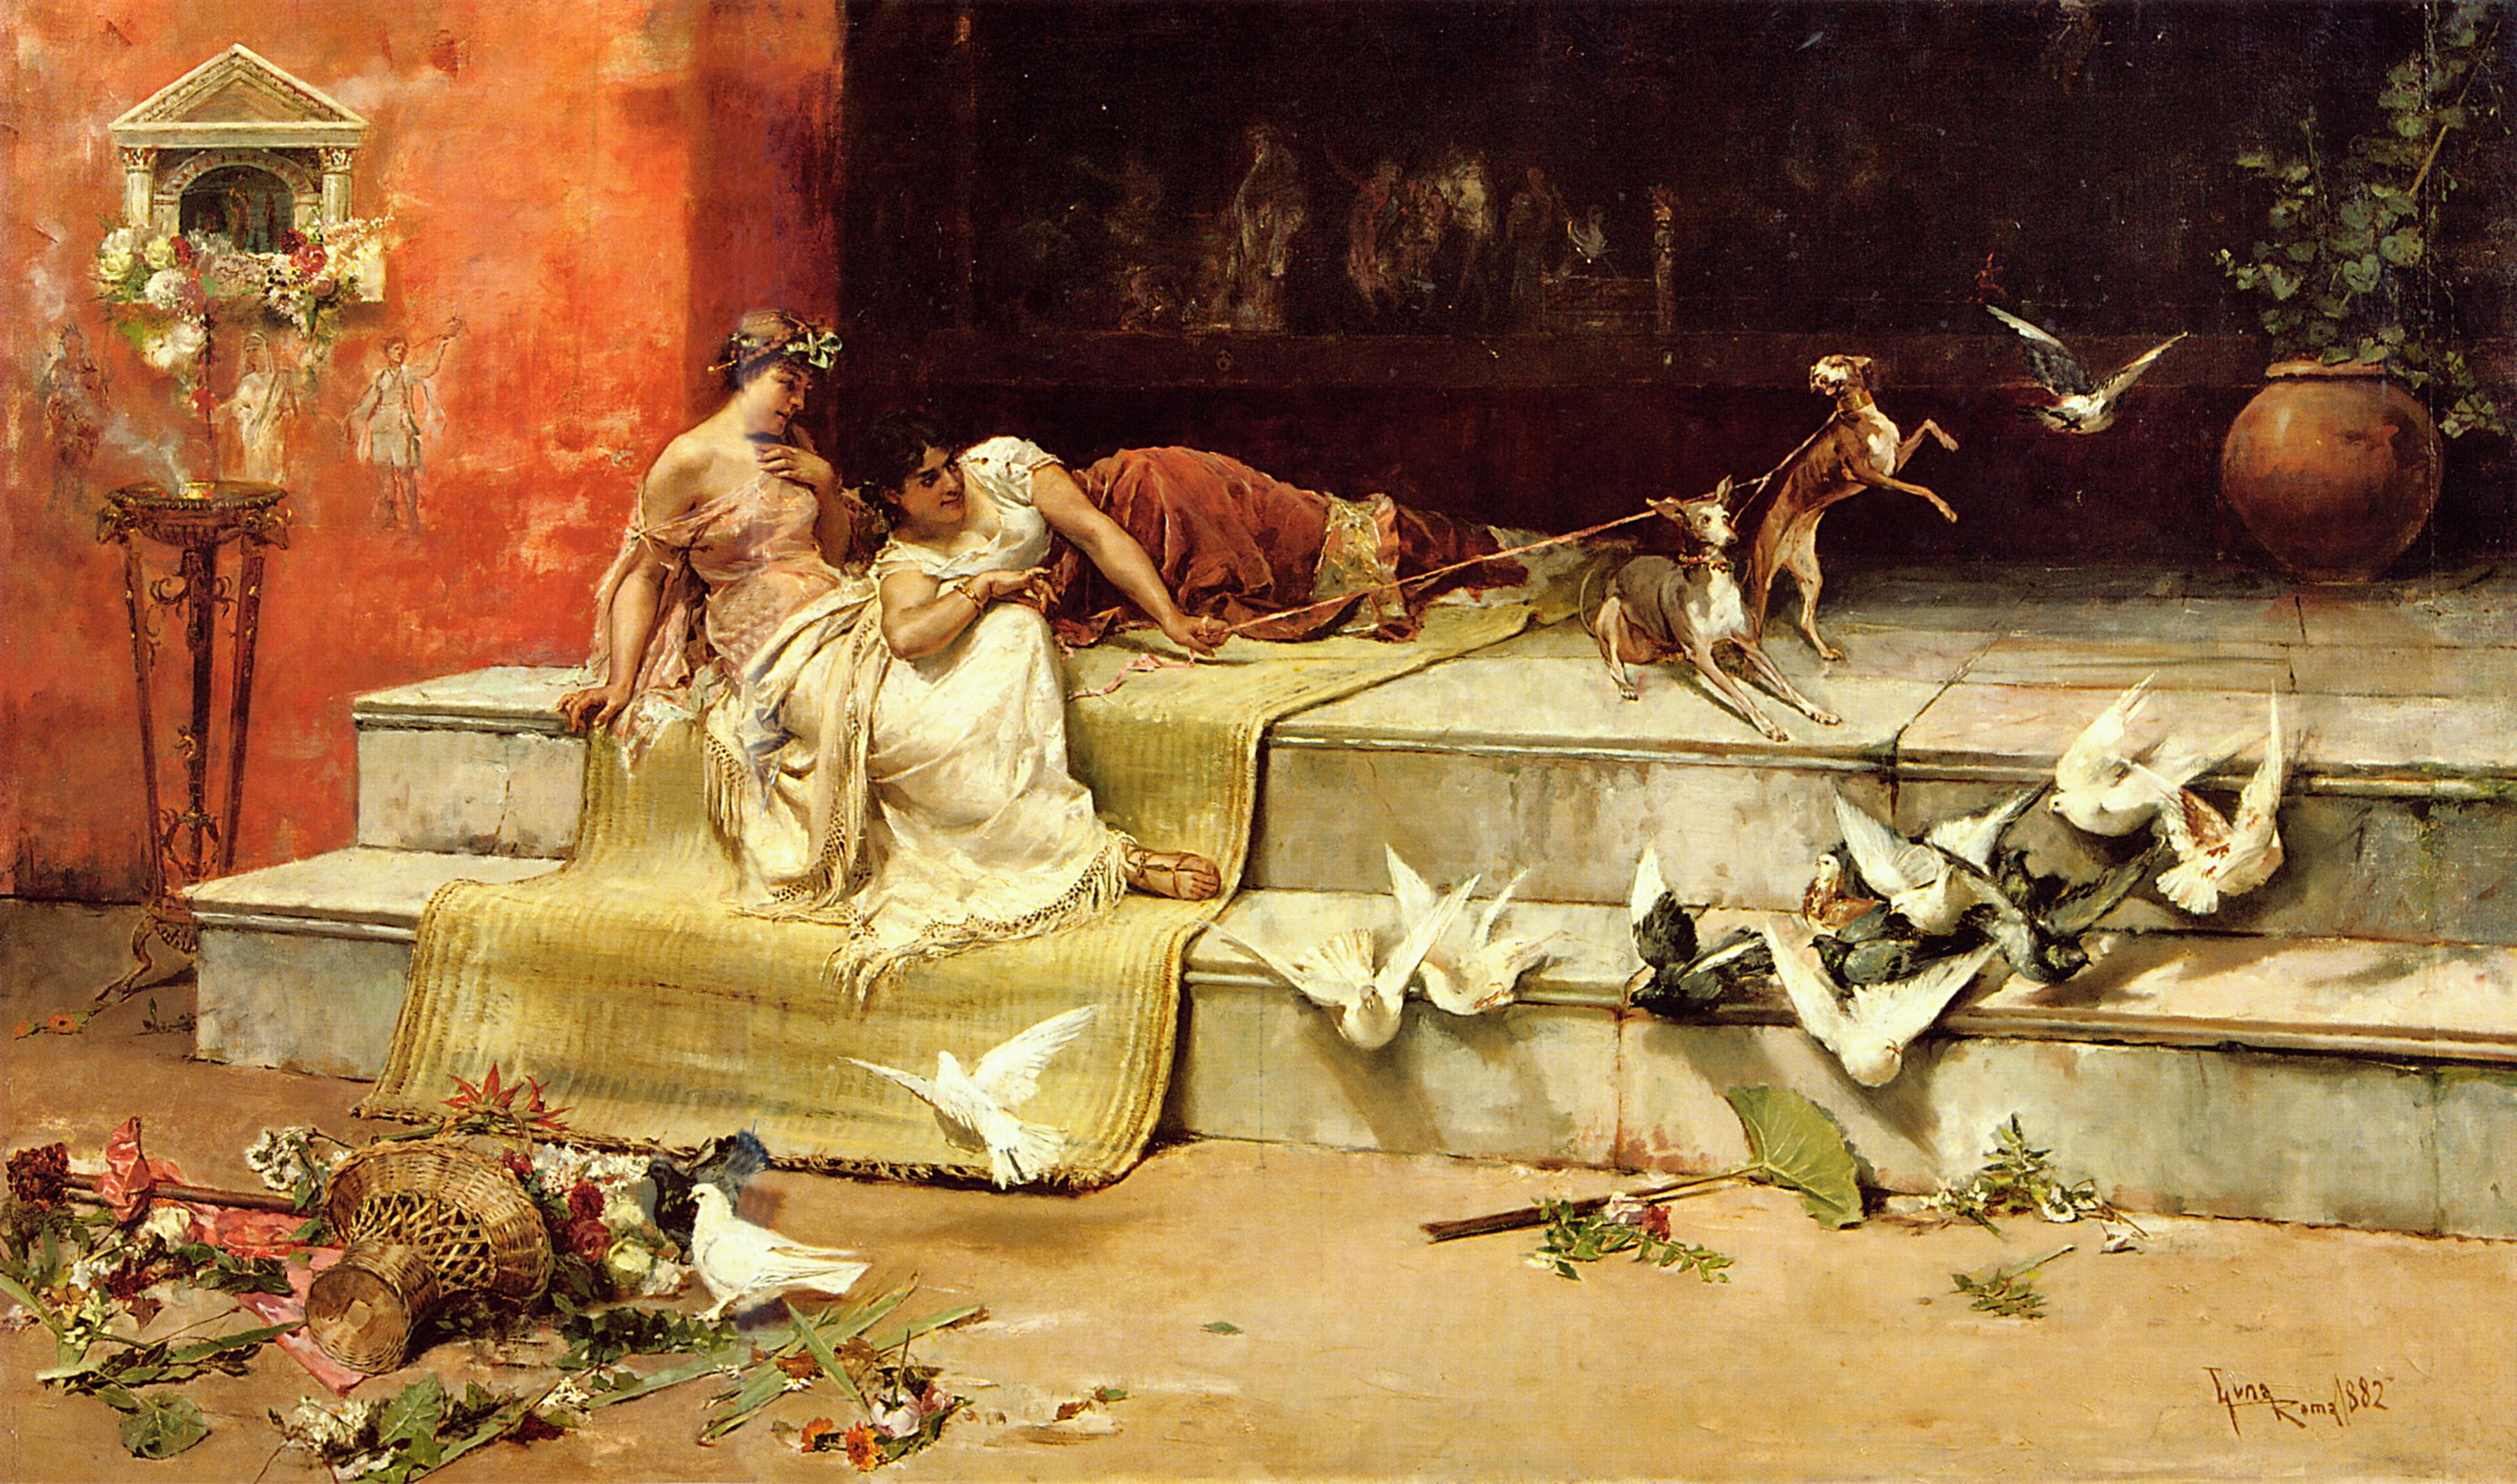 juan luna paintings Google Search Art Romanticism